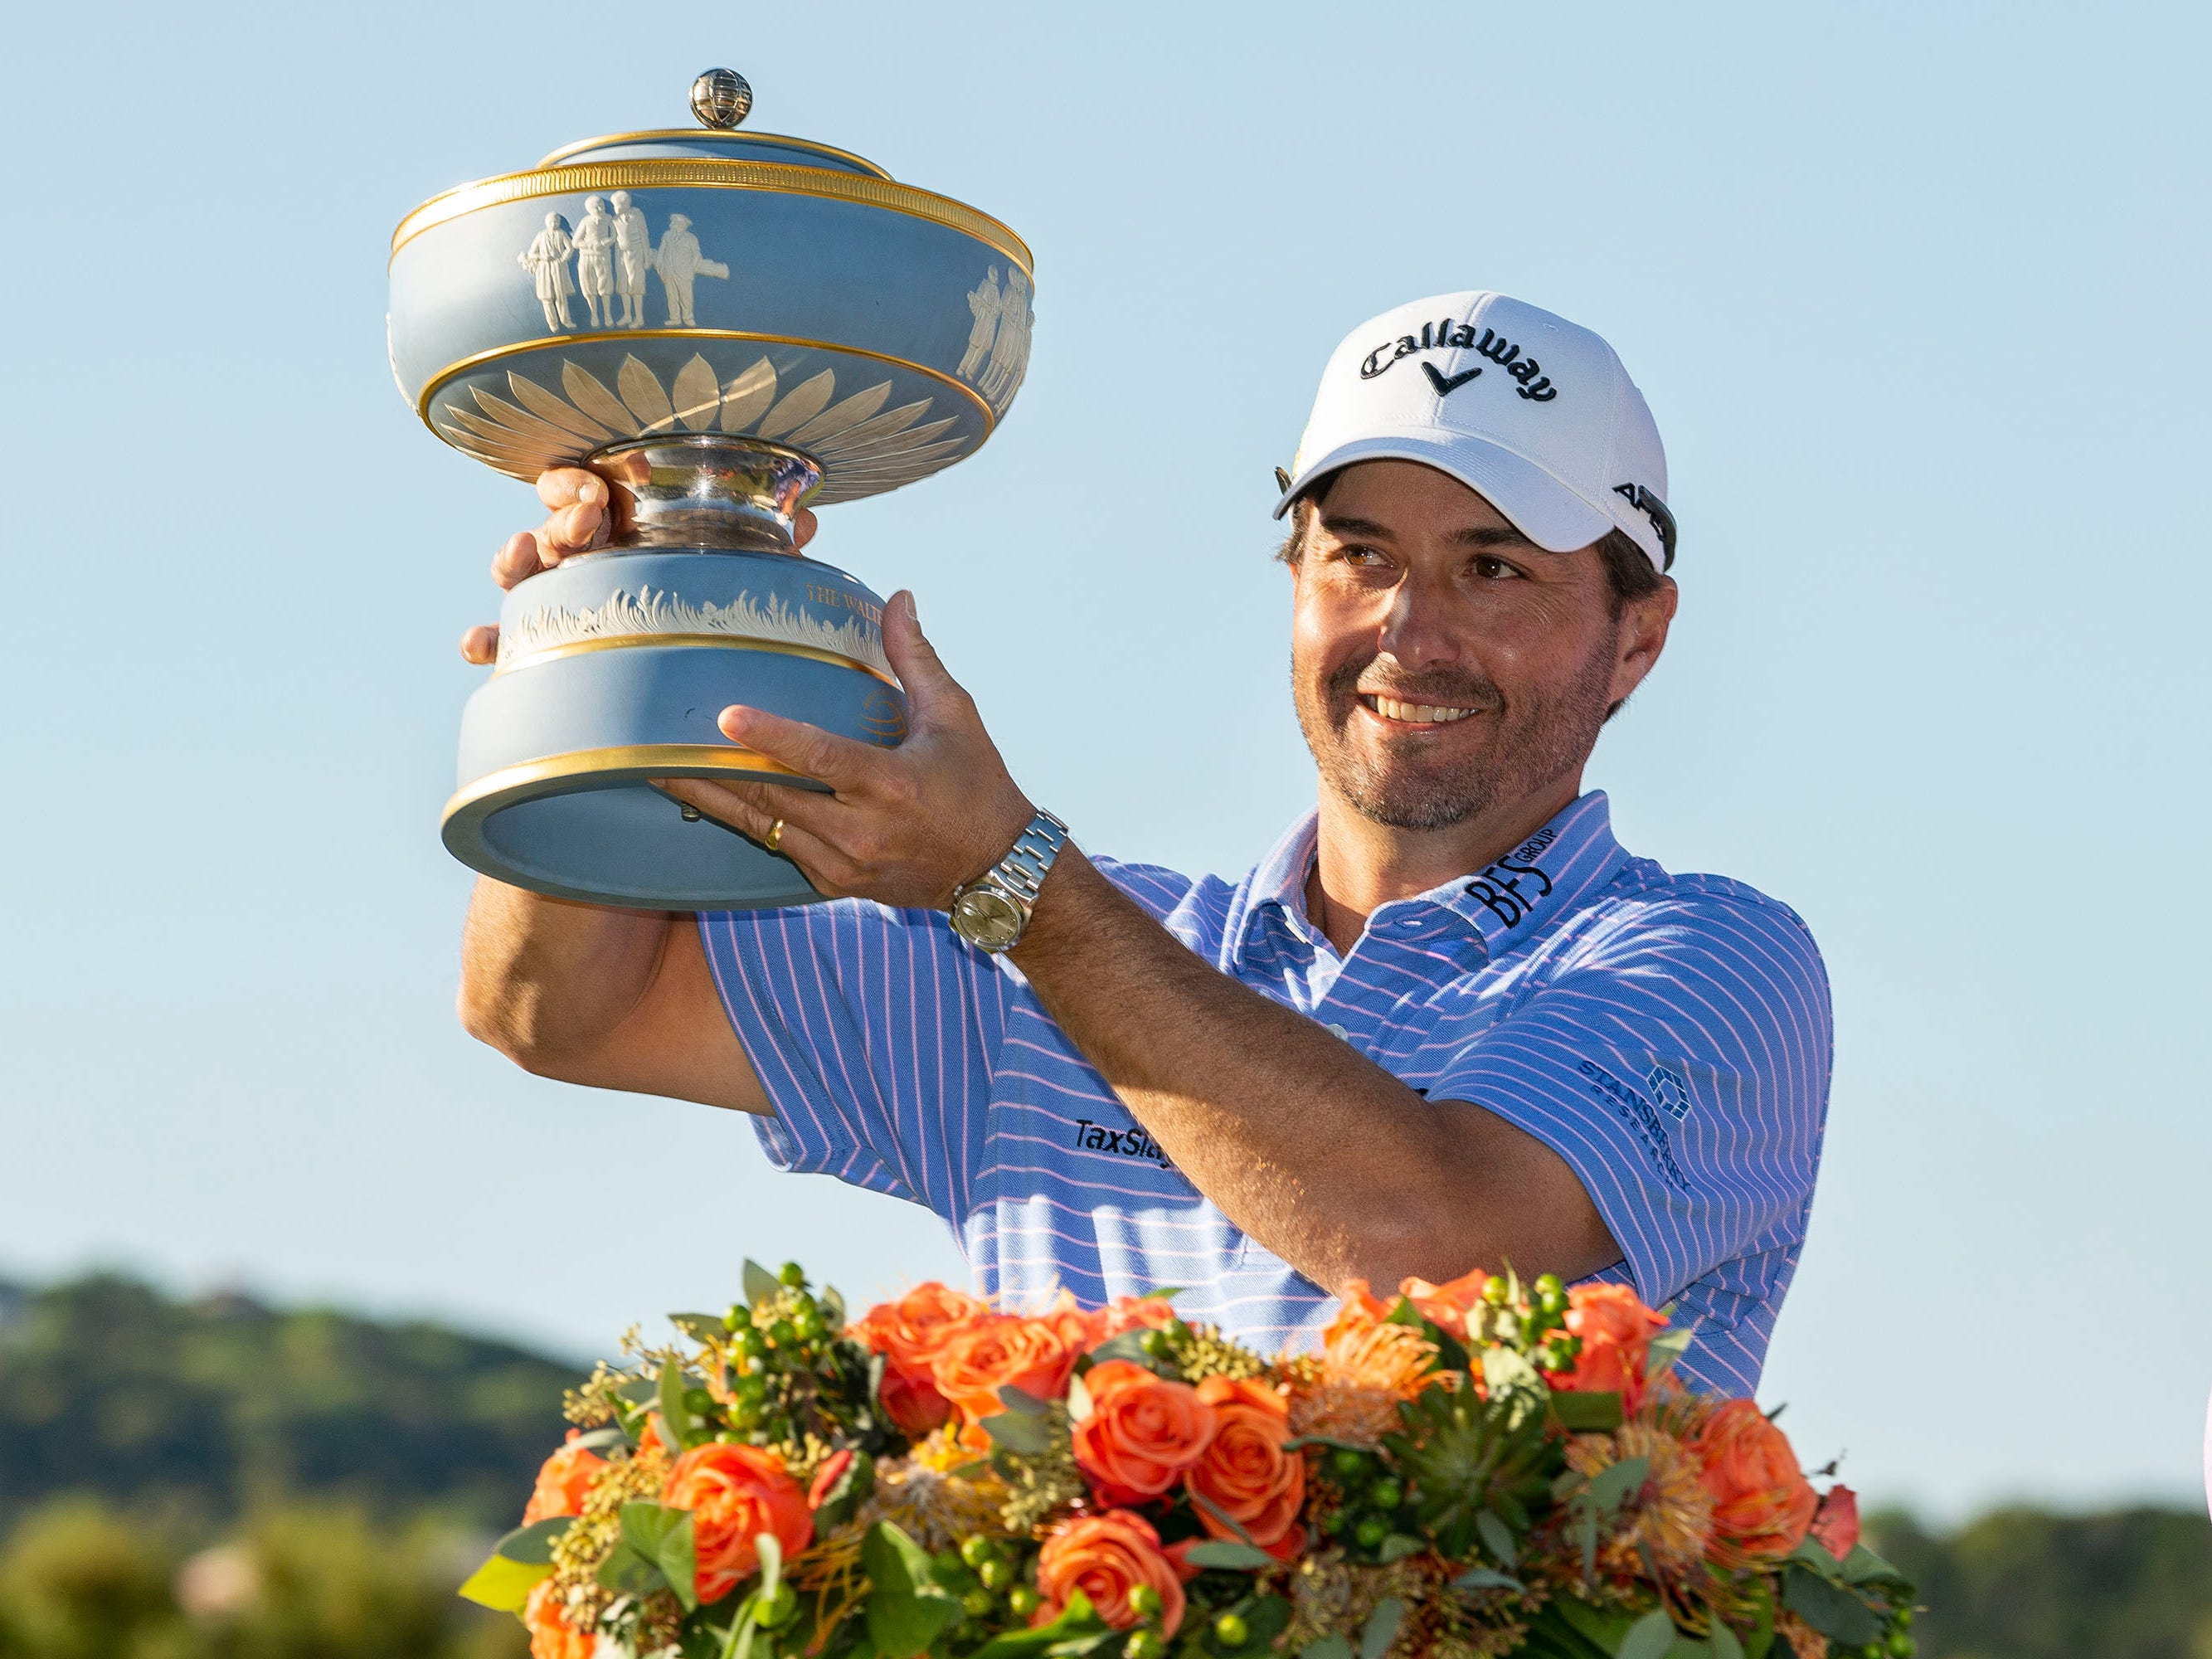 March 31: Kevin Kisner celebrates after winning the final round of the WGC - Dell Technologies Match Play tournament at Austin Country Club.